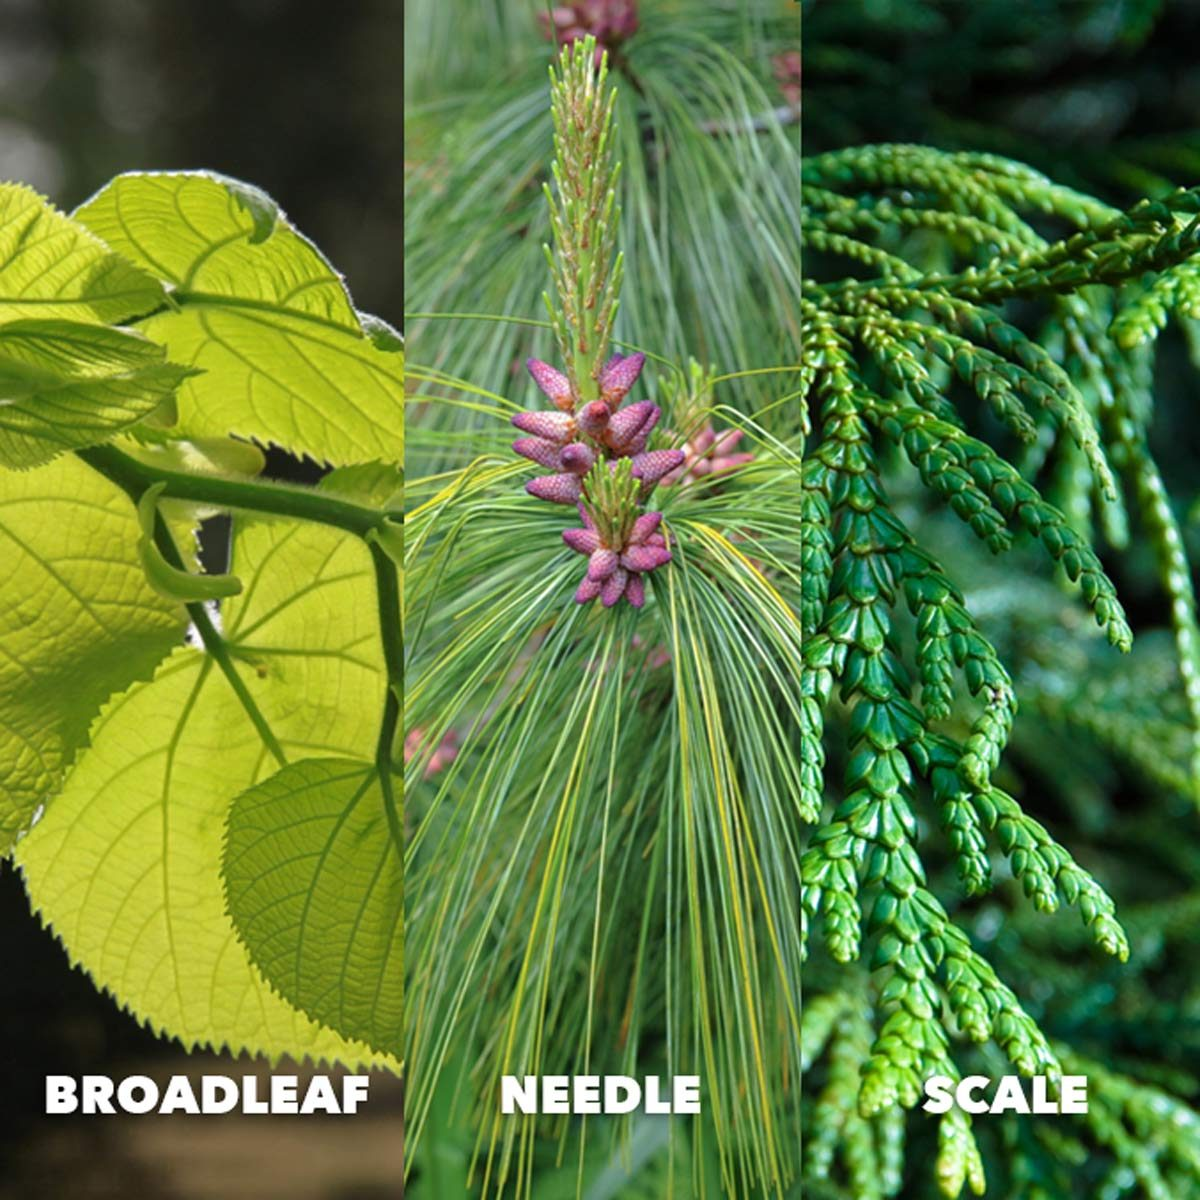 broadleaf needle scale leaf identification